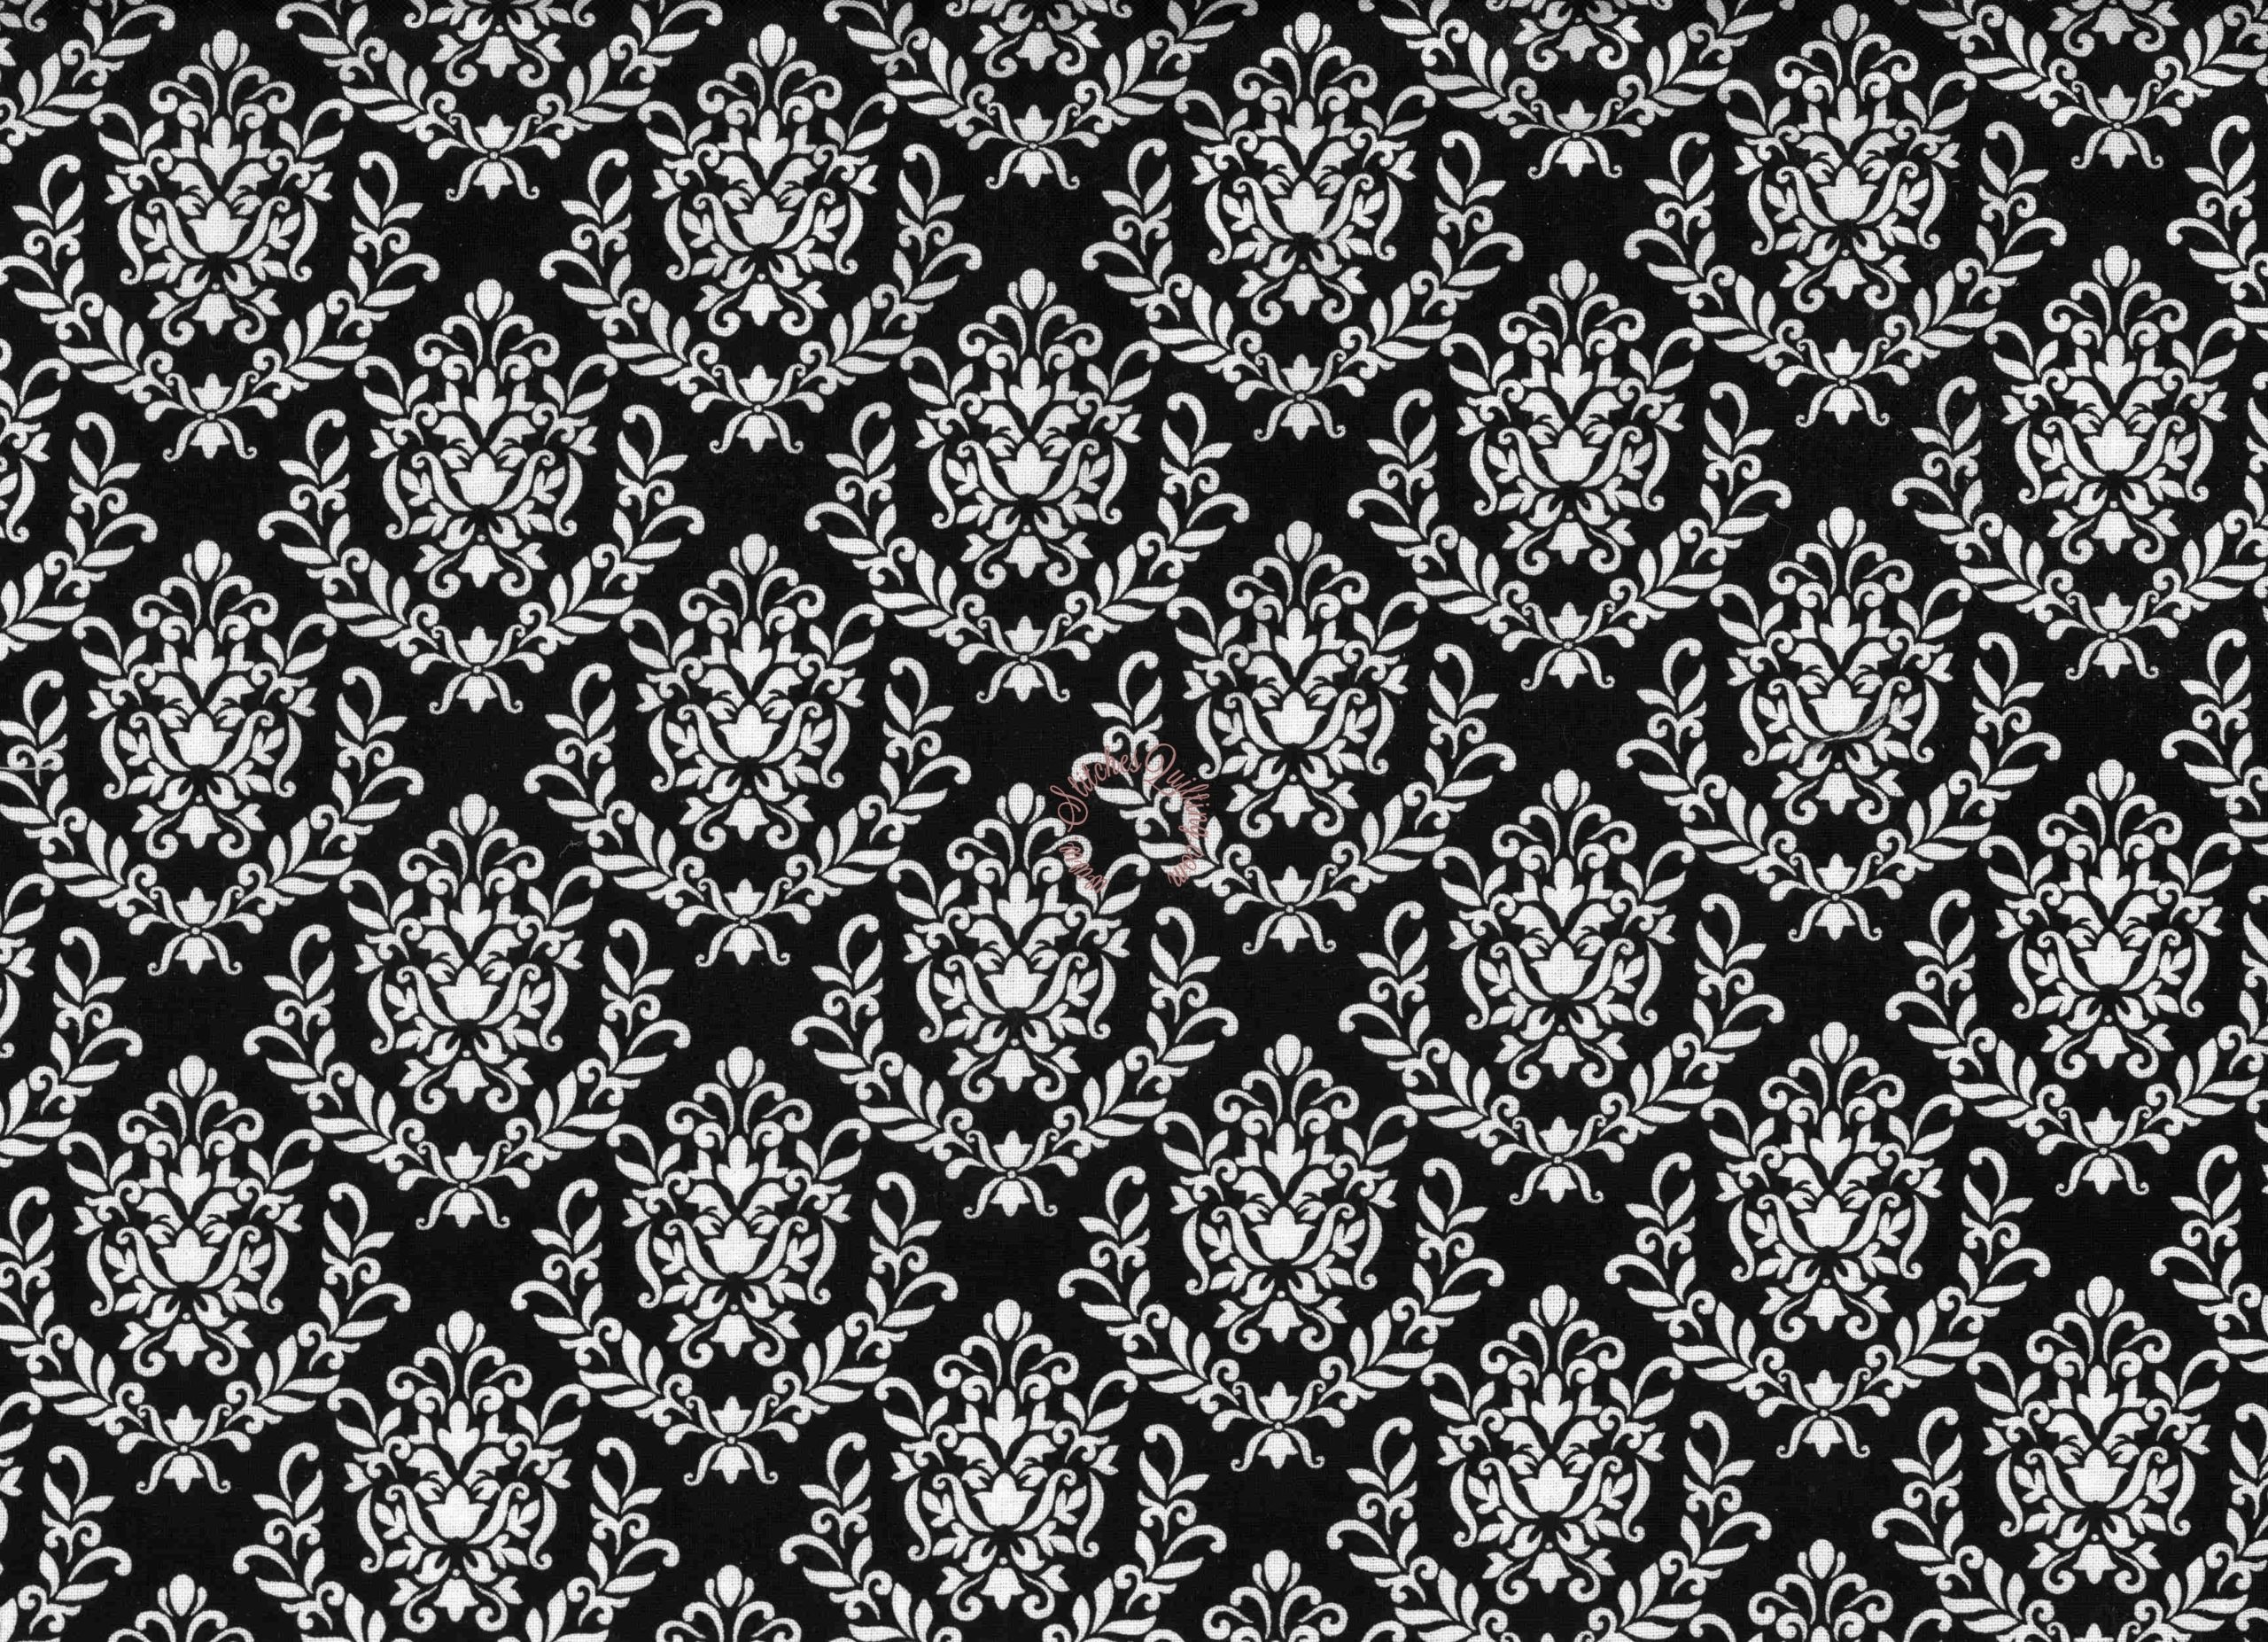 100/% Cotton Riley Blake Fabric by the Yard Varity of Designs to Choose From